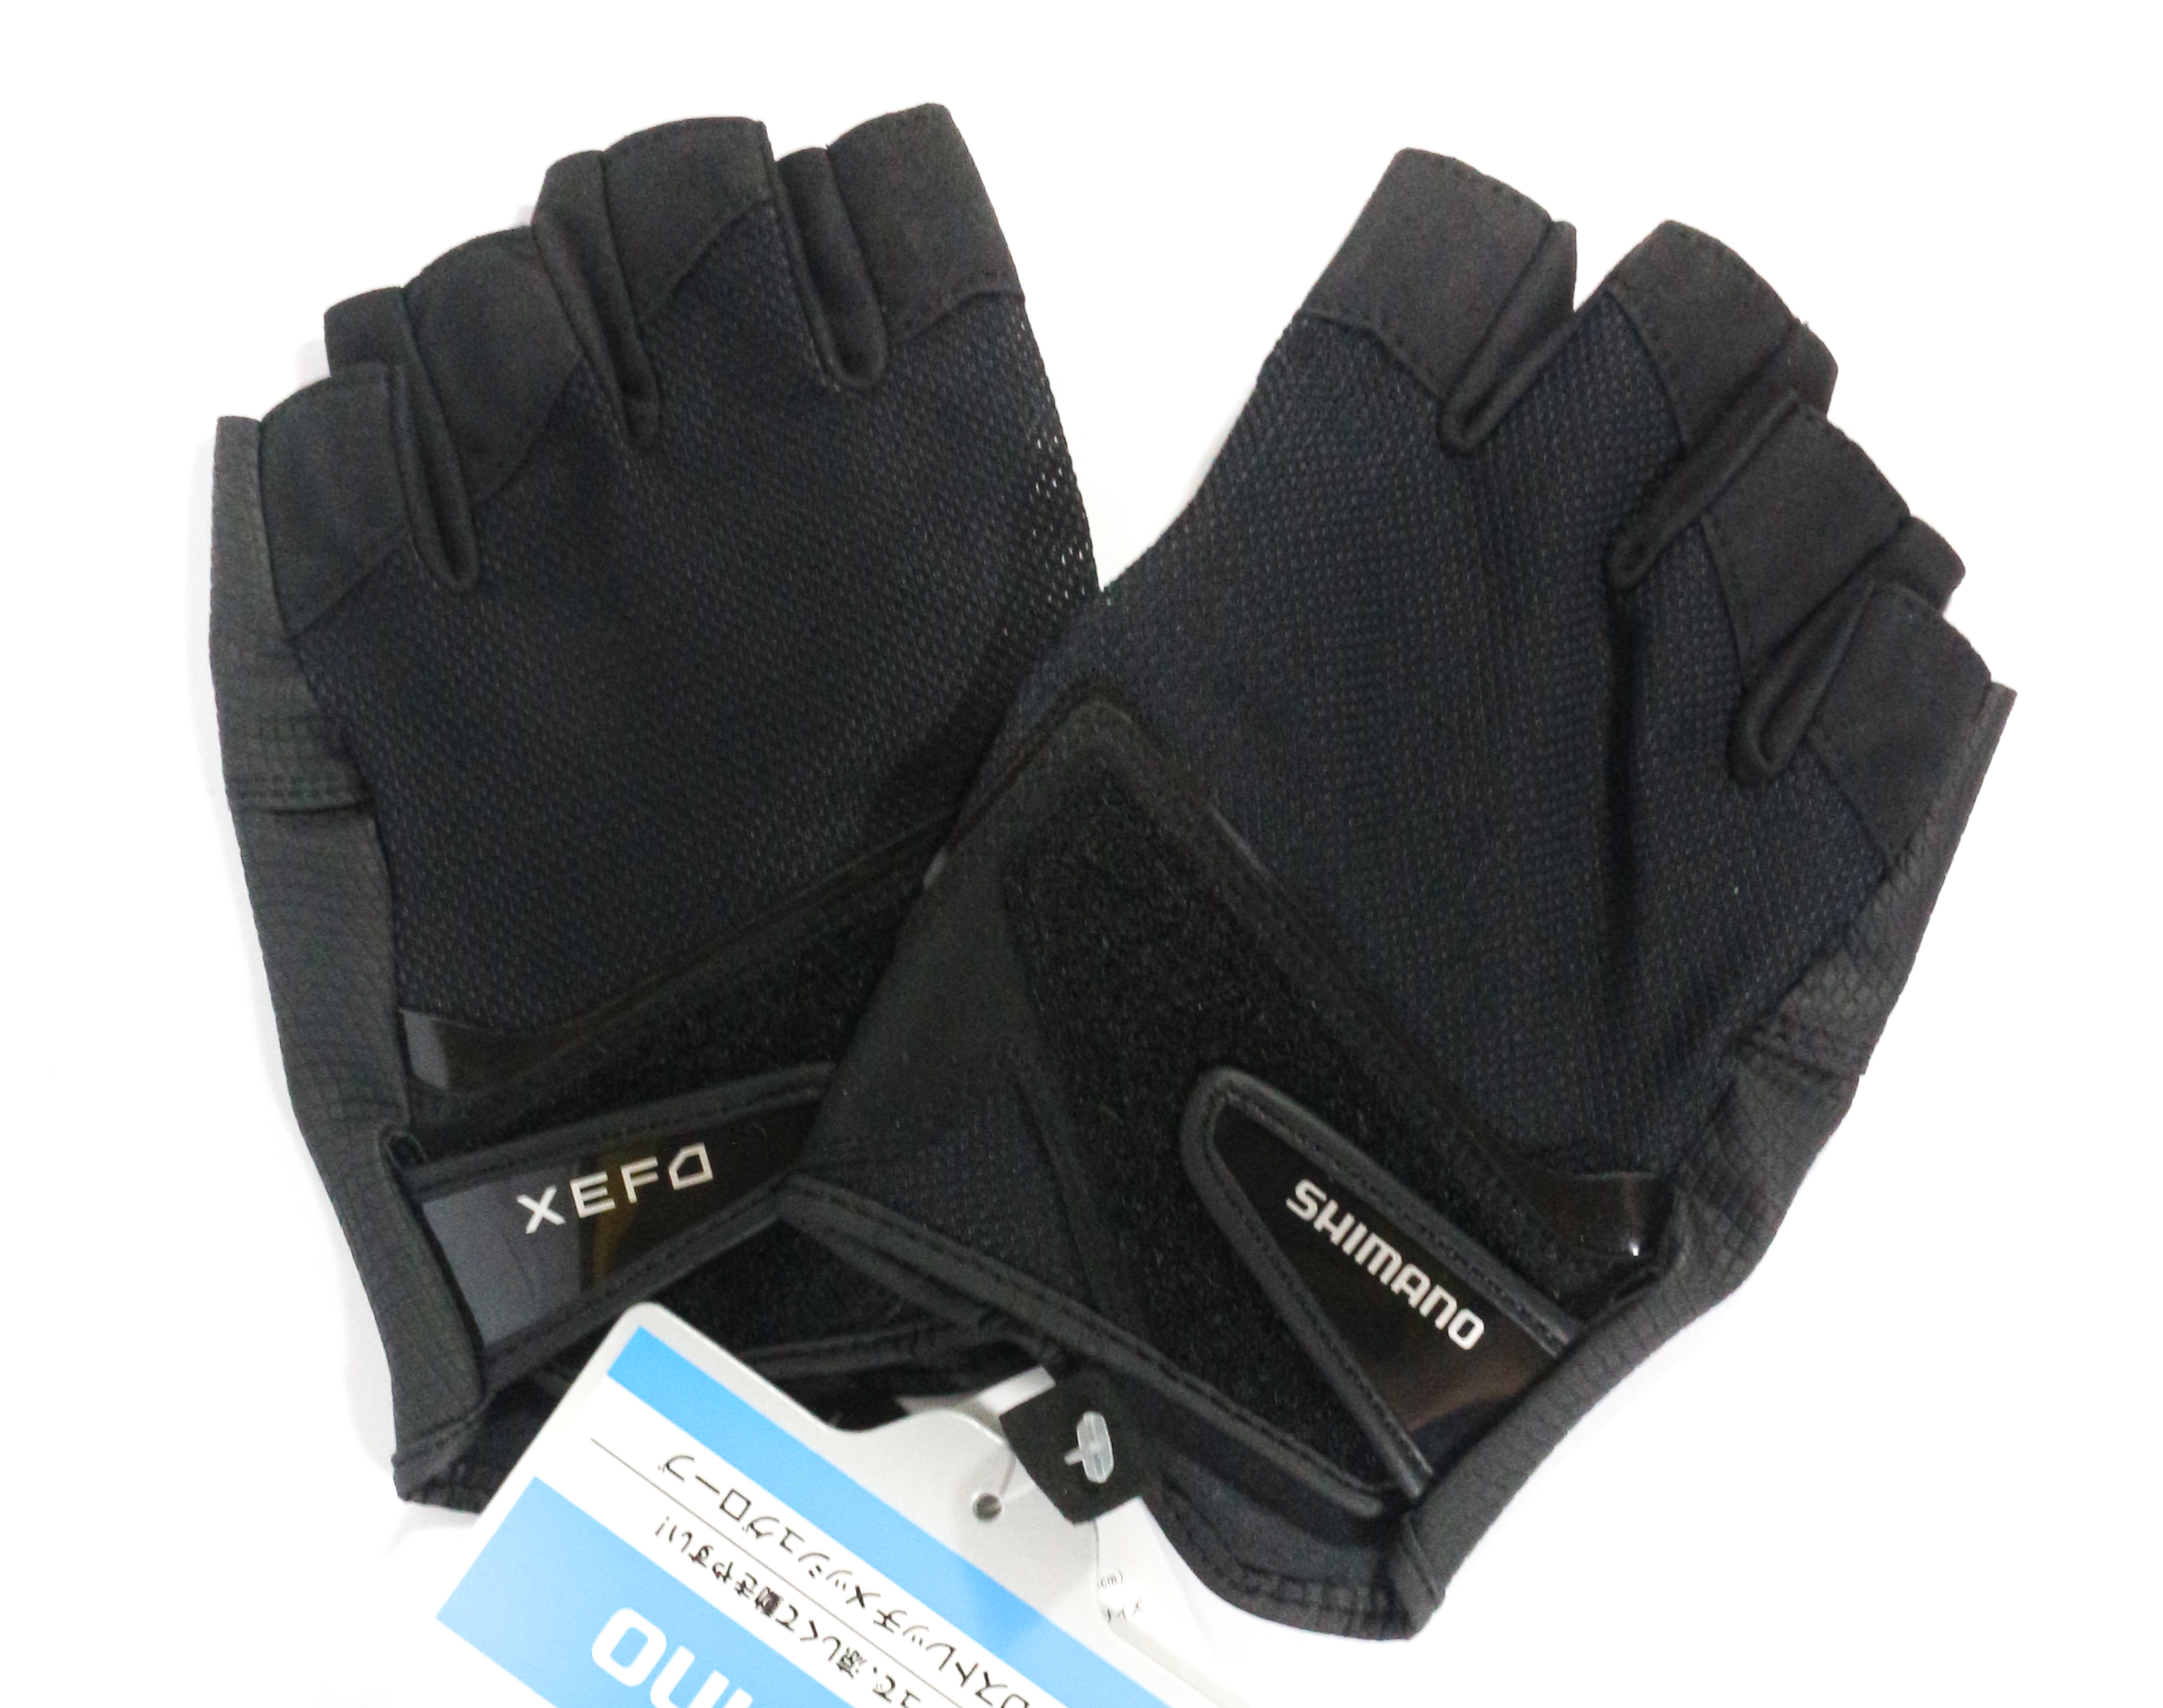 Shimano GL-242P Gloves XEFO 3D Casting 5 Fingerless Black Size L 450814